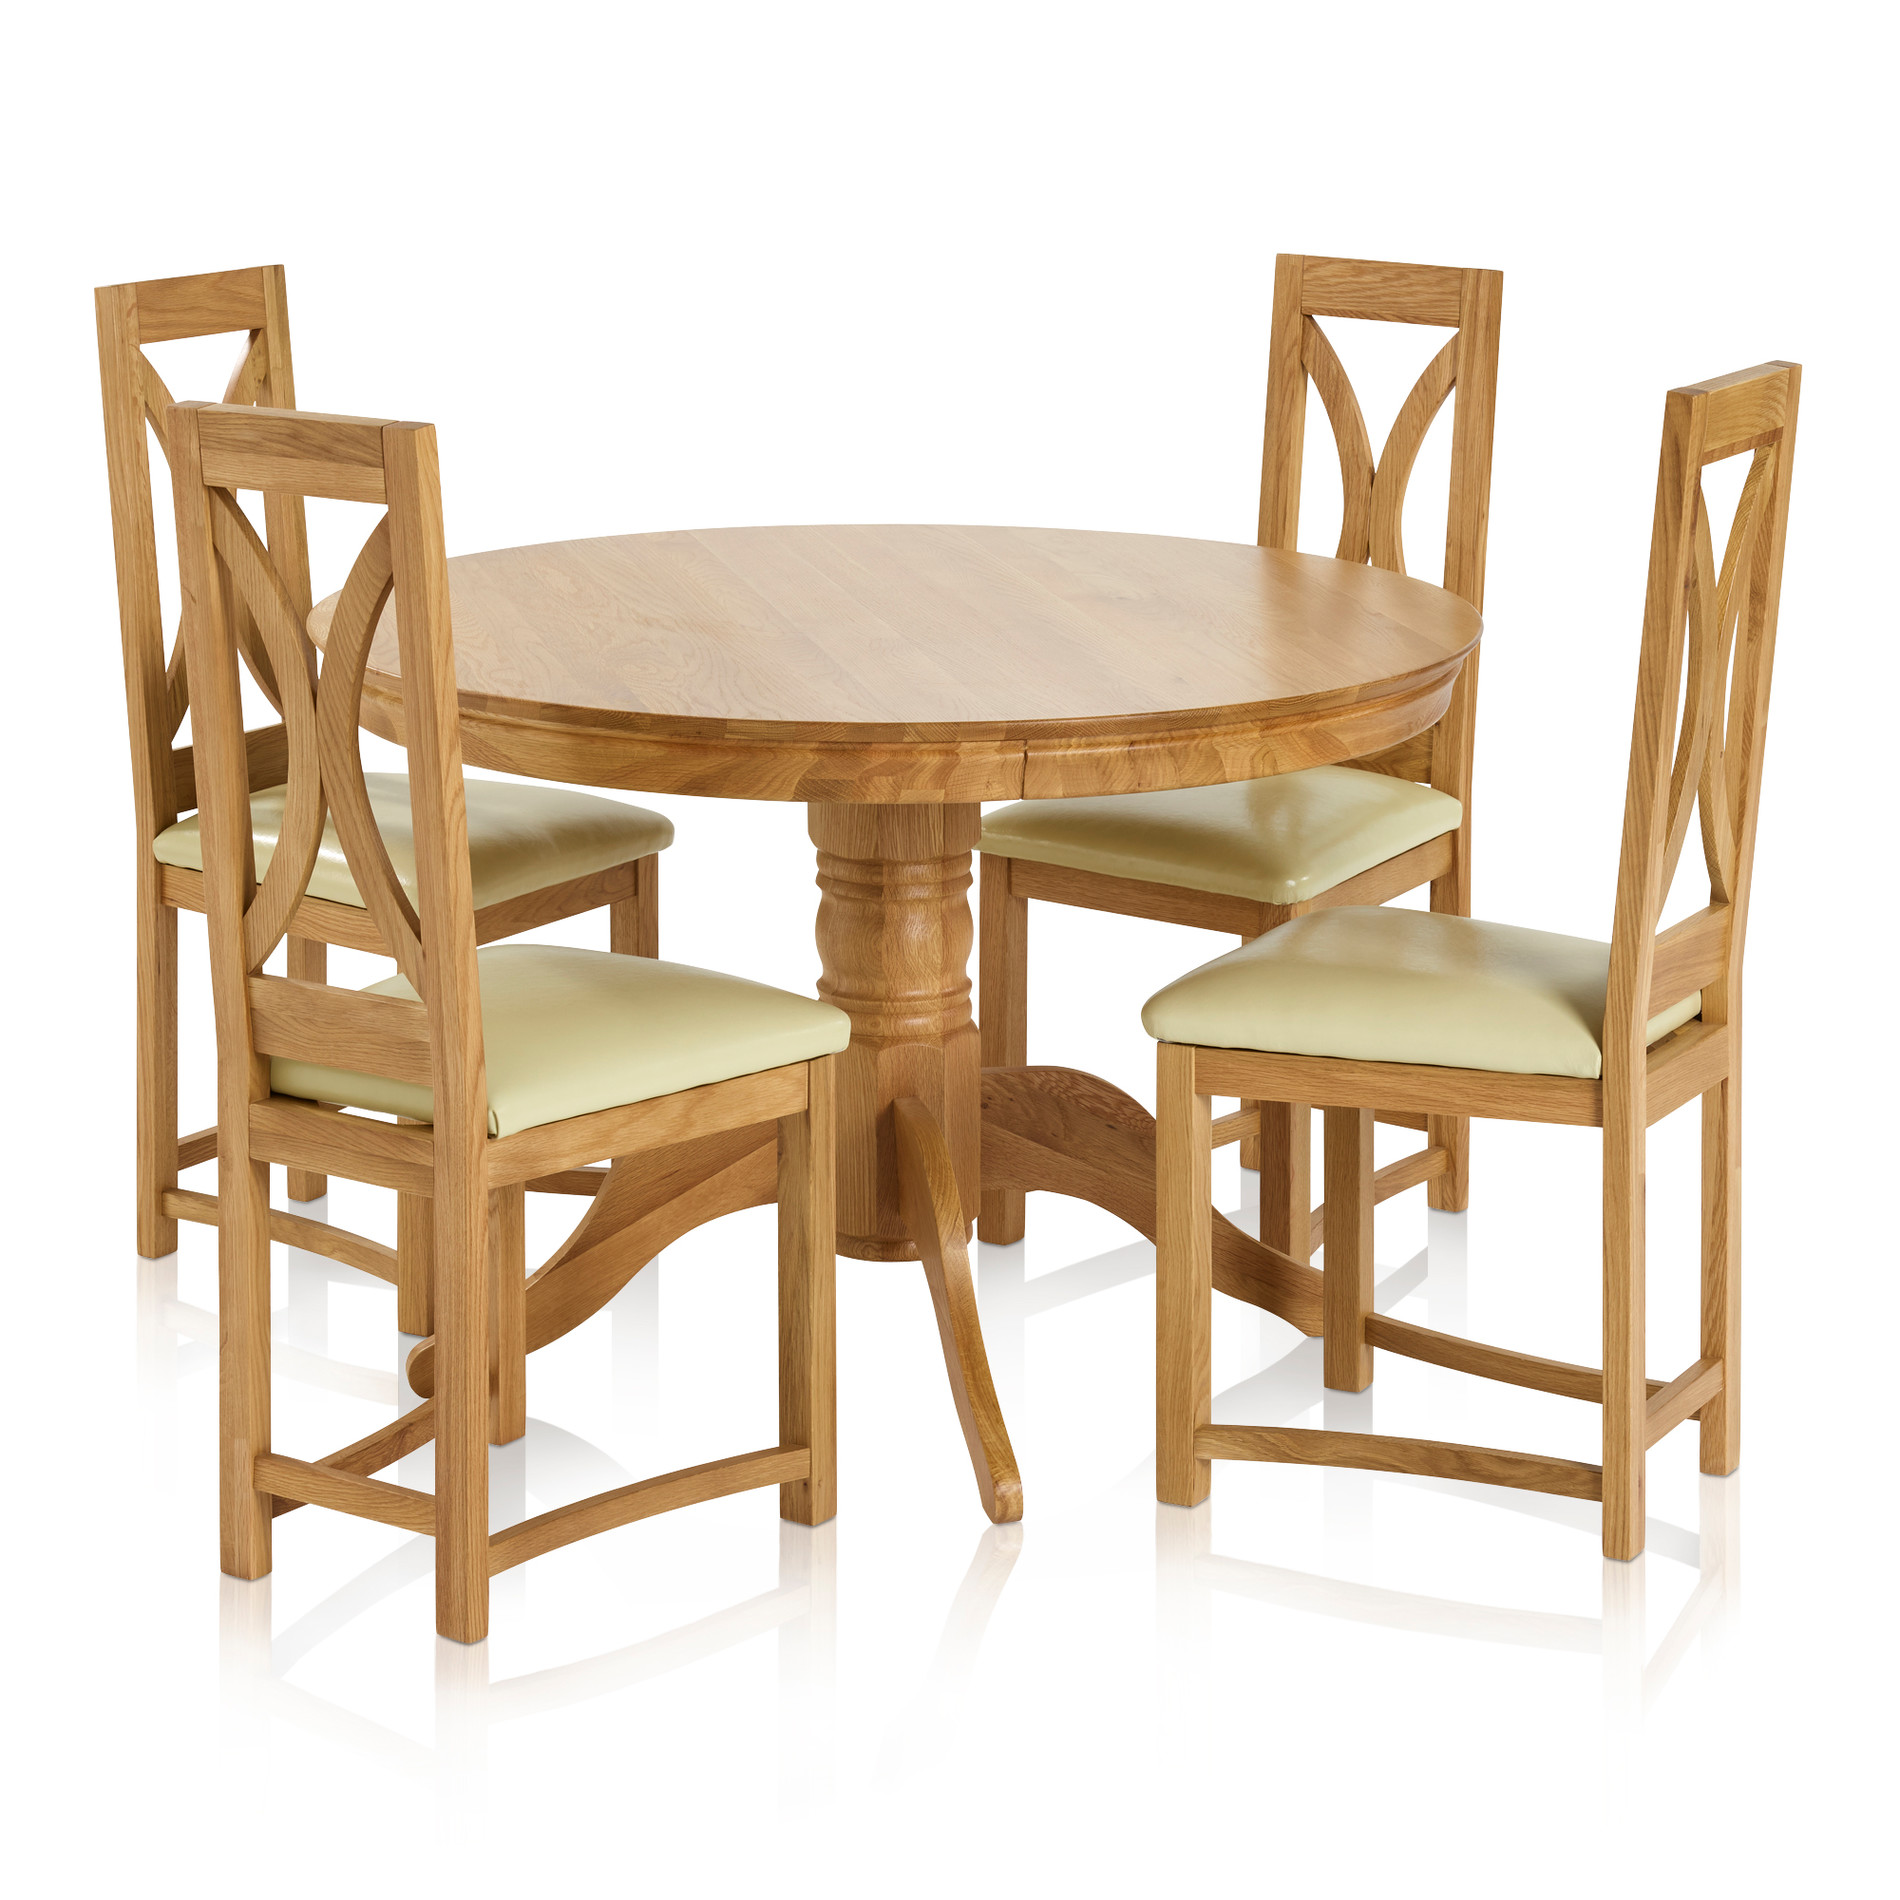 Pedestal Chair Pedestal Natural Solid Oak Dining Set 4ft Round Table With 4 Loop Back And Cream Leather Dining Chair